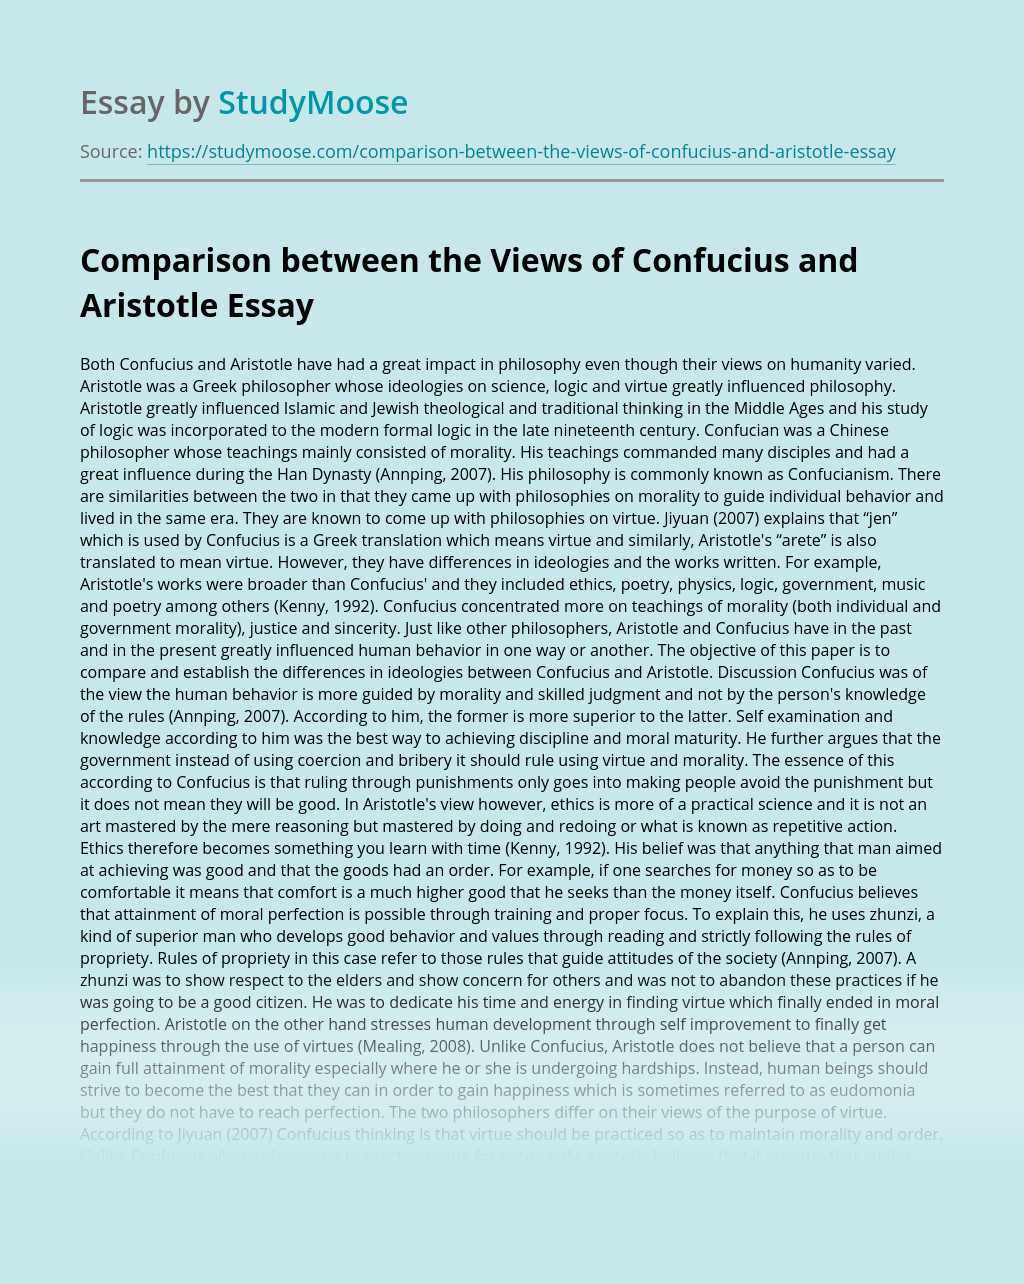 Comparison between the Views of Confucius and Aristotle